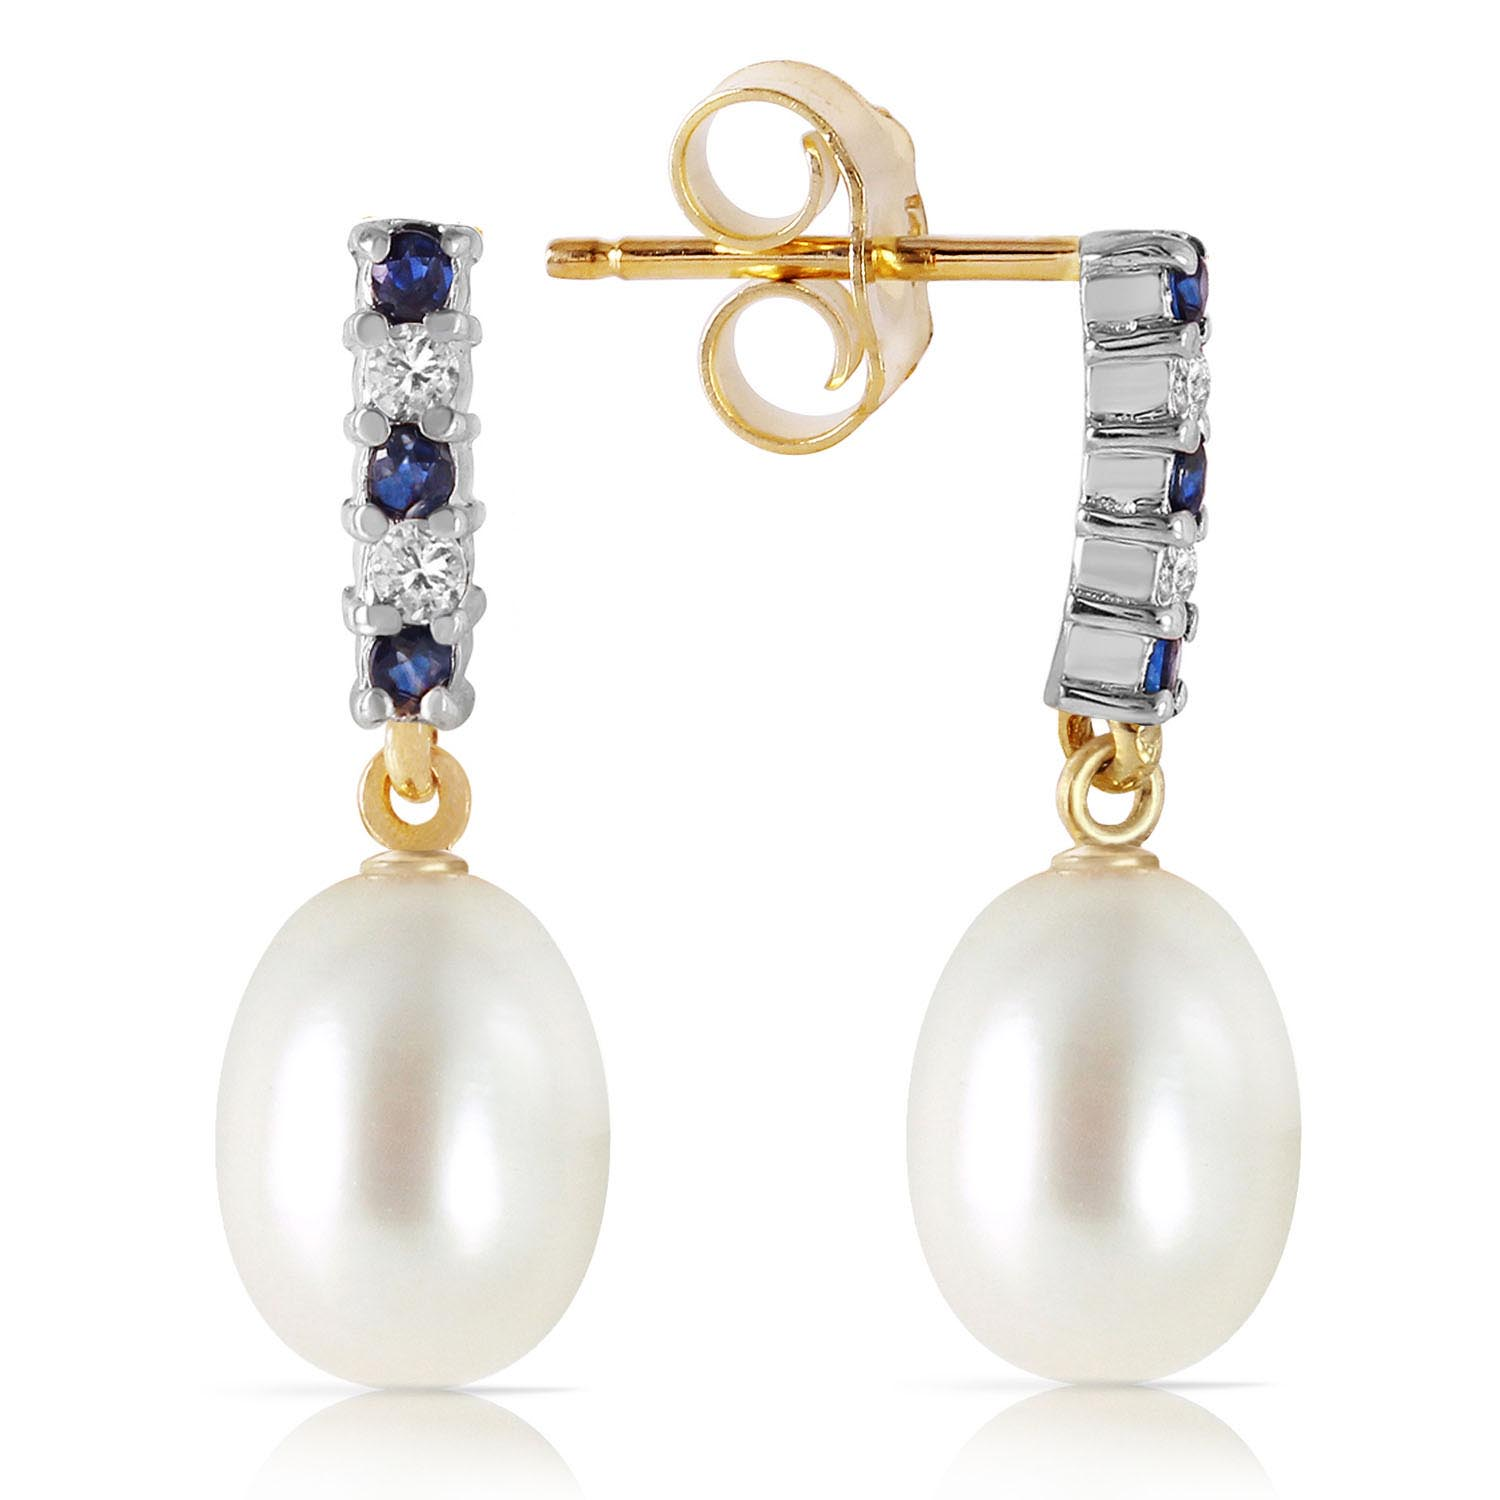 Pearl, Sapphire and Diamond Stud Earrings 8.24ctw in 9ct Gold